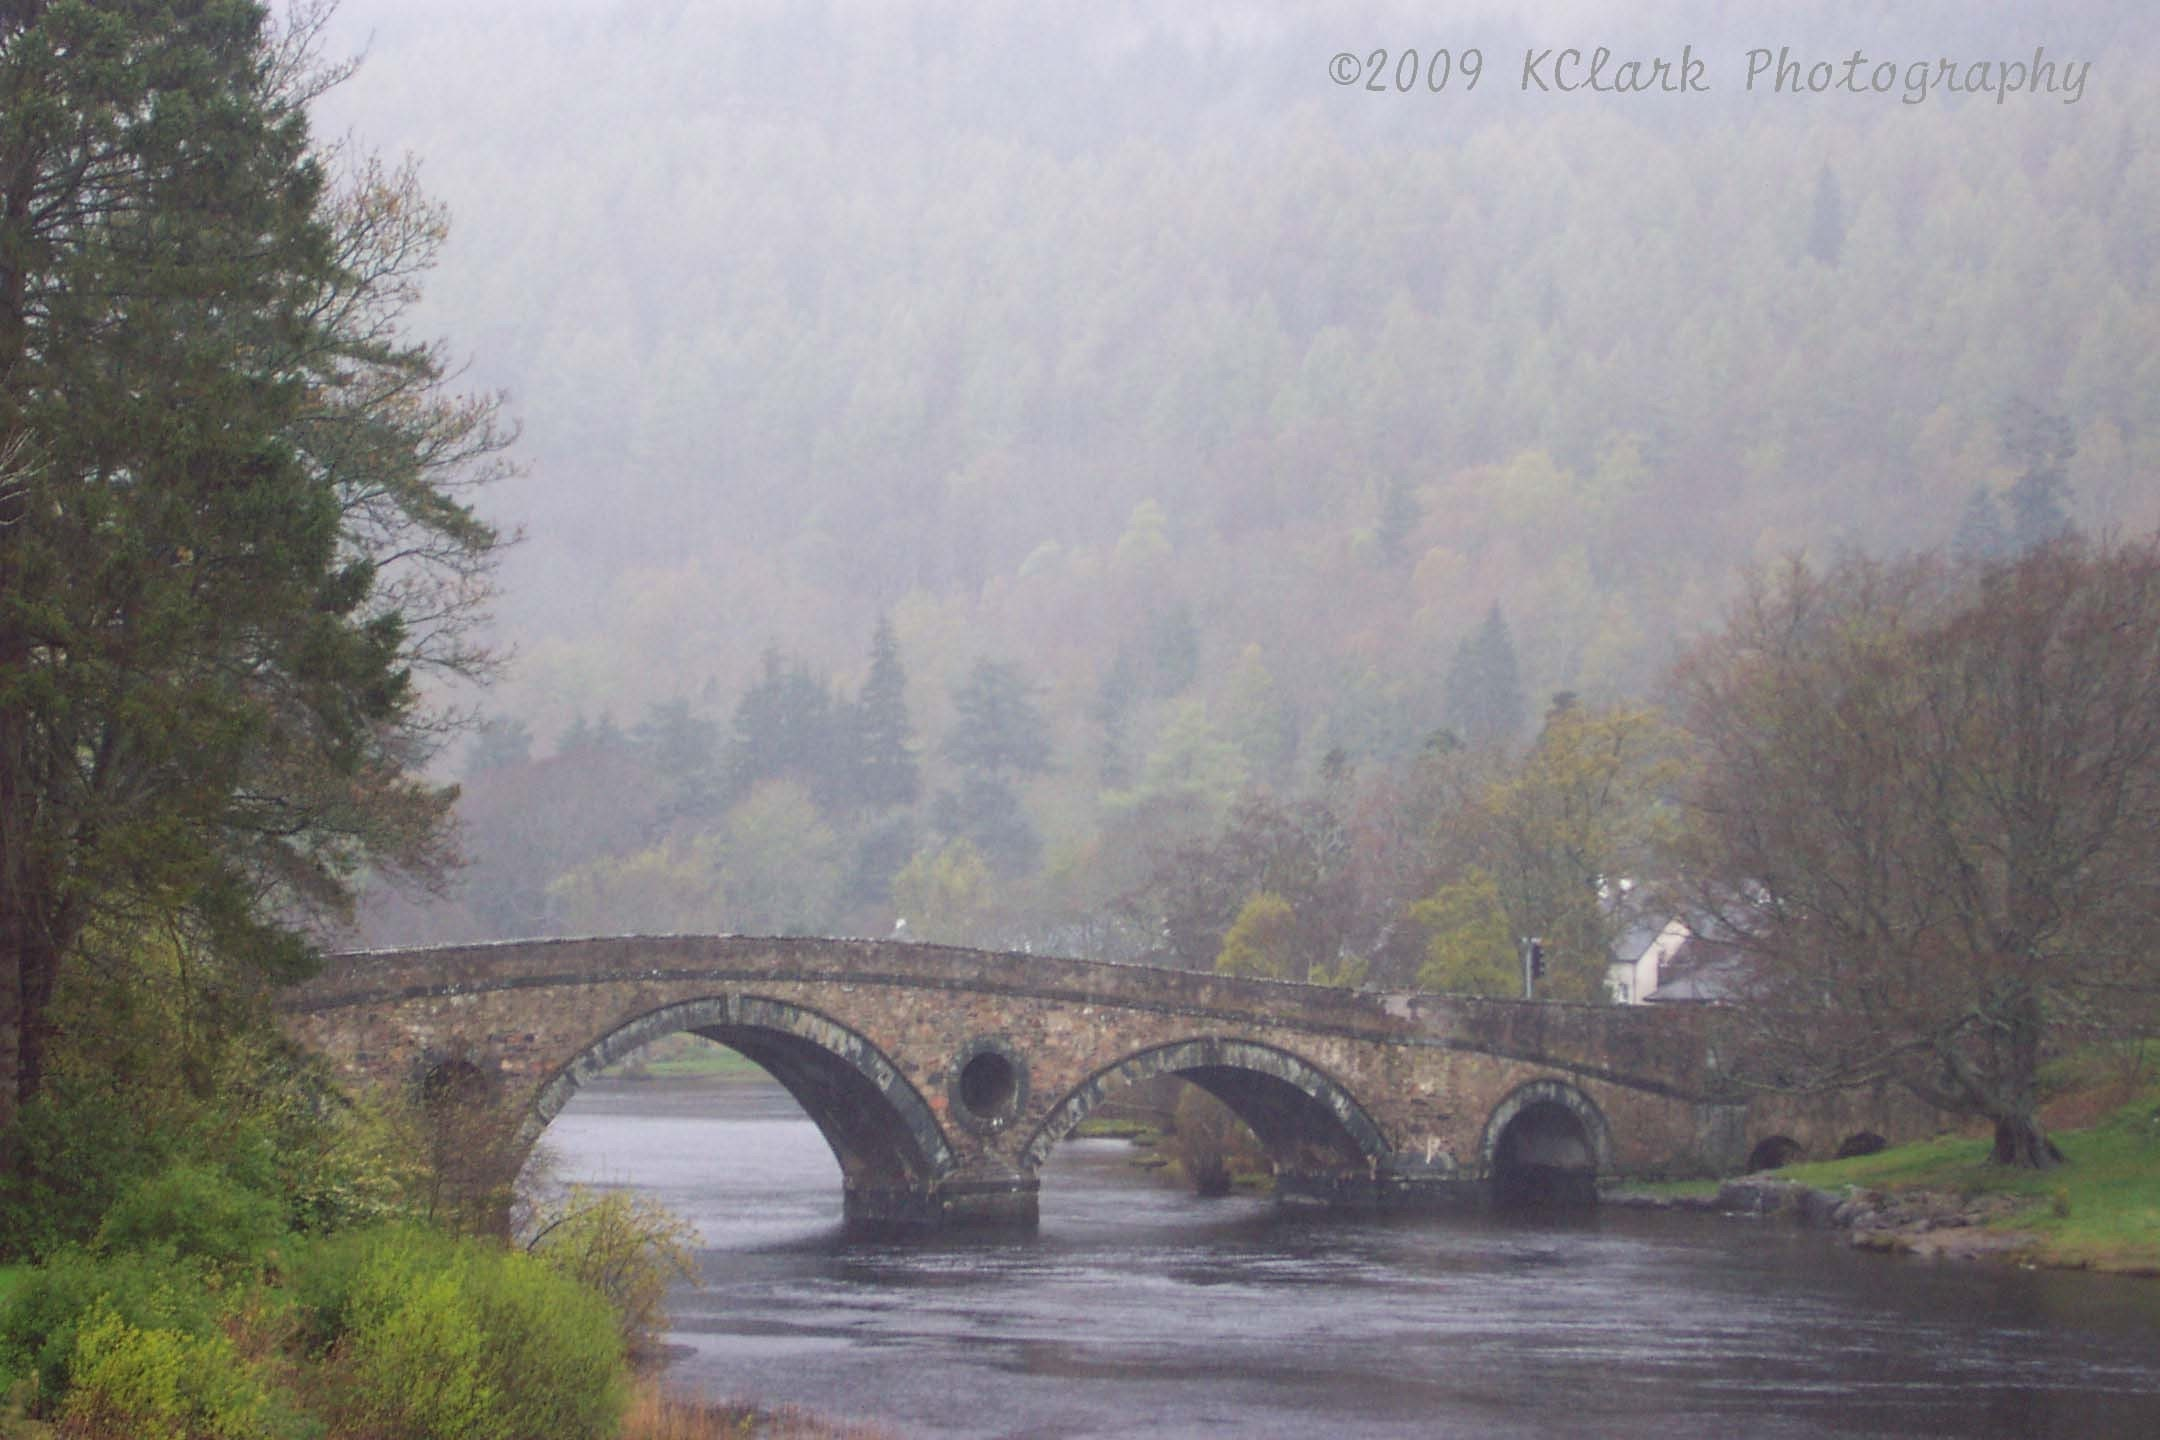 The Bridge  Scotland 8x10 Photograph 11x14 mat landscape misty dreamy travel river home decor outlander - KClarkPhotography